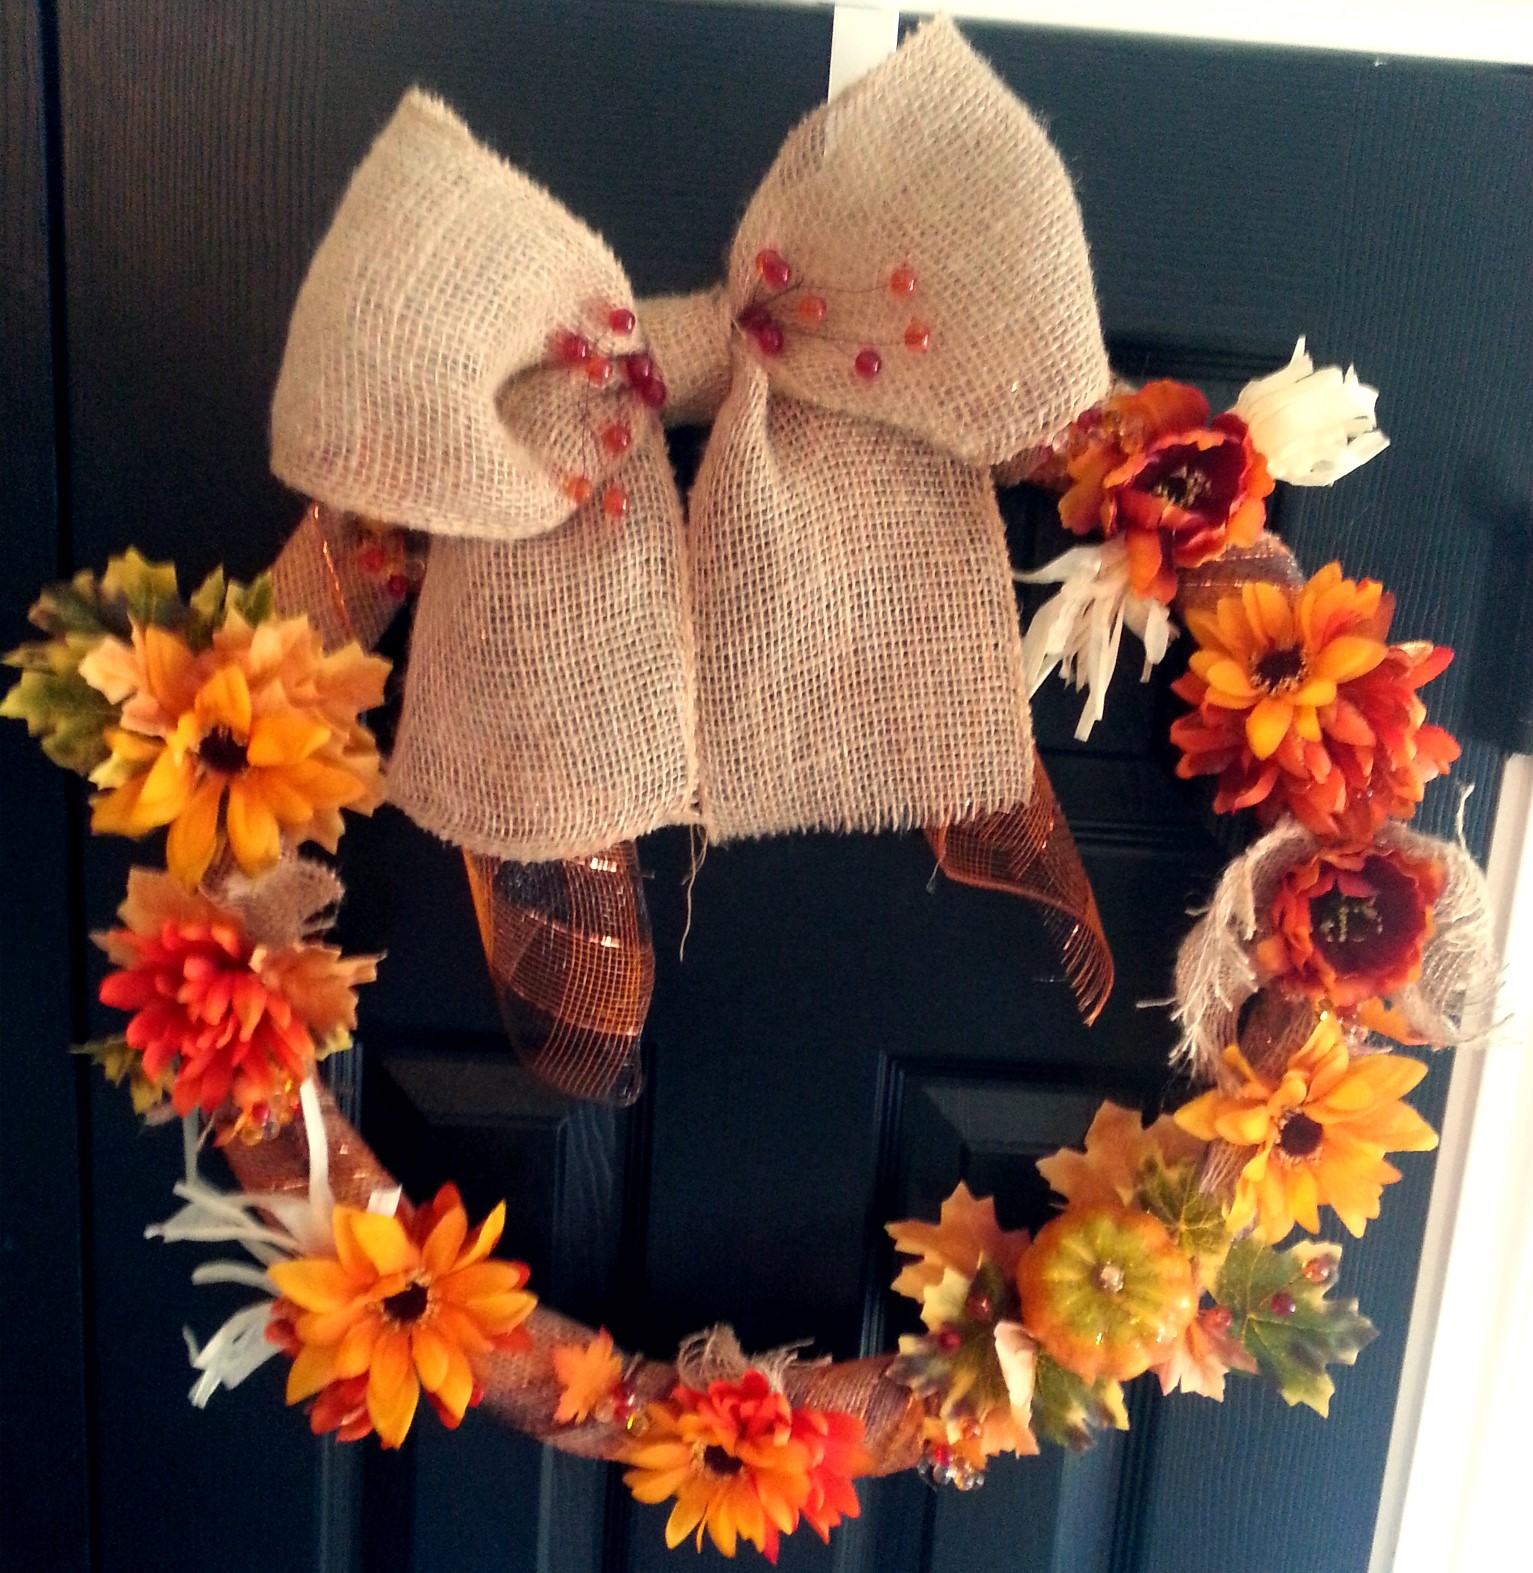 http://www.realsuburbia.com/2013/09/falling-for-fall-diy-fall-wreath.html